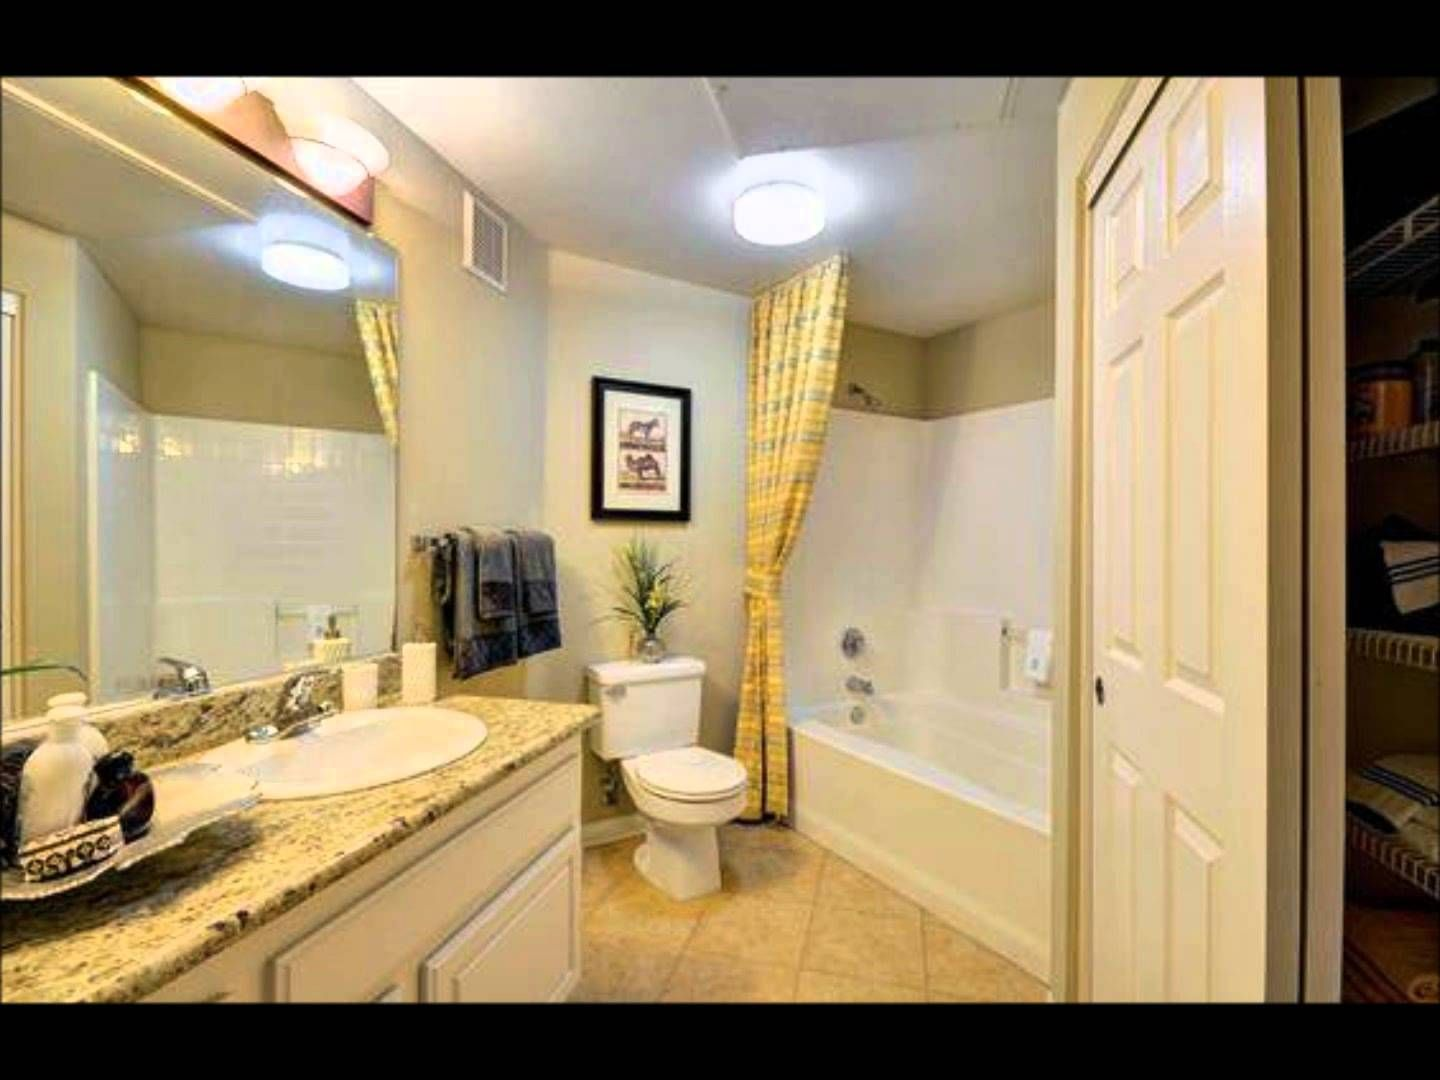 2 Bedroom Apartments For Rent In Dc Impressive Awesome 2 Bedroom Apartments Utilities Included With Regard To Inspiration Design